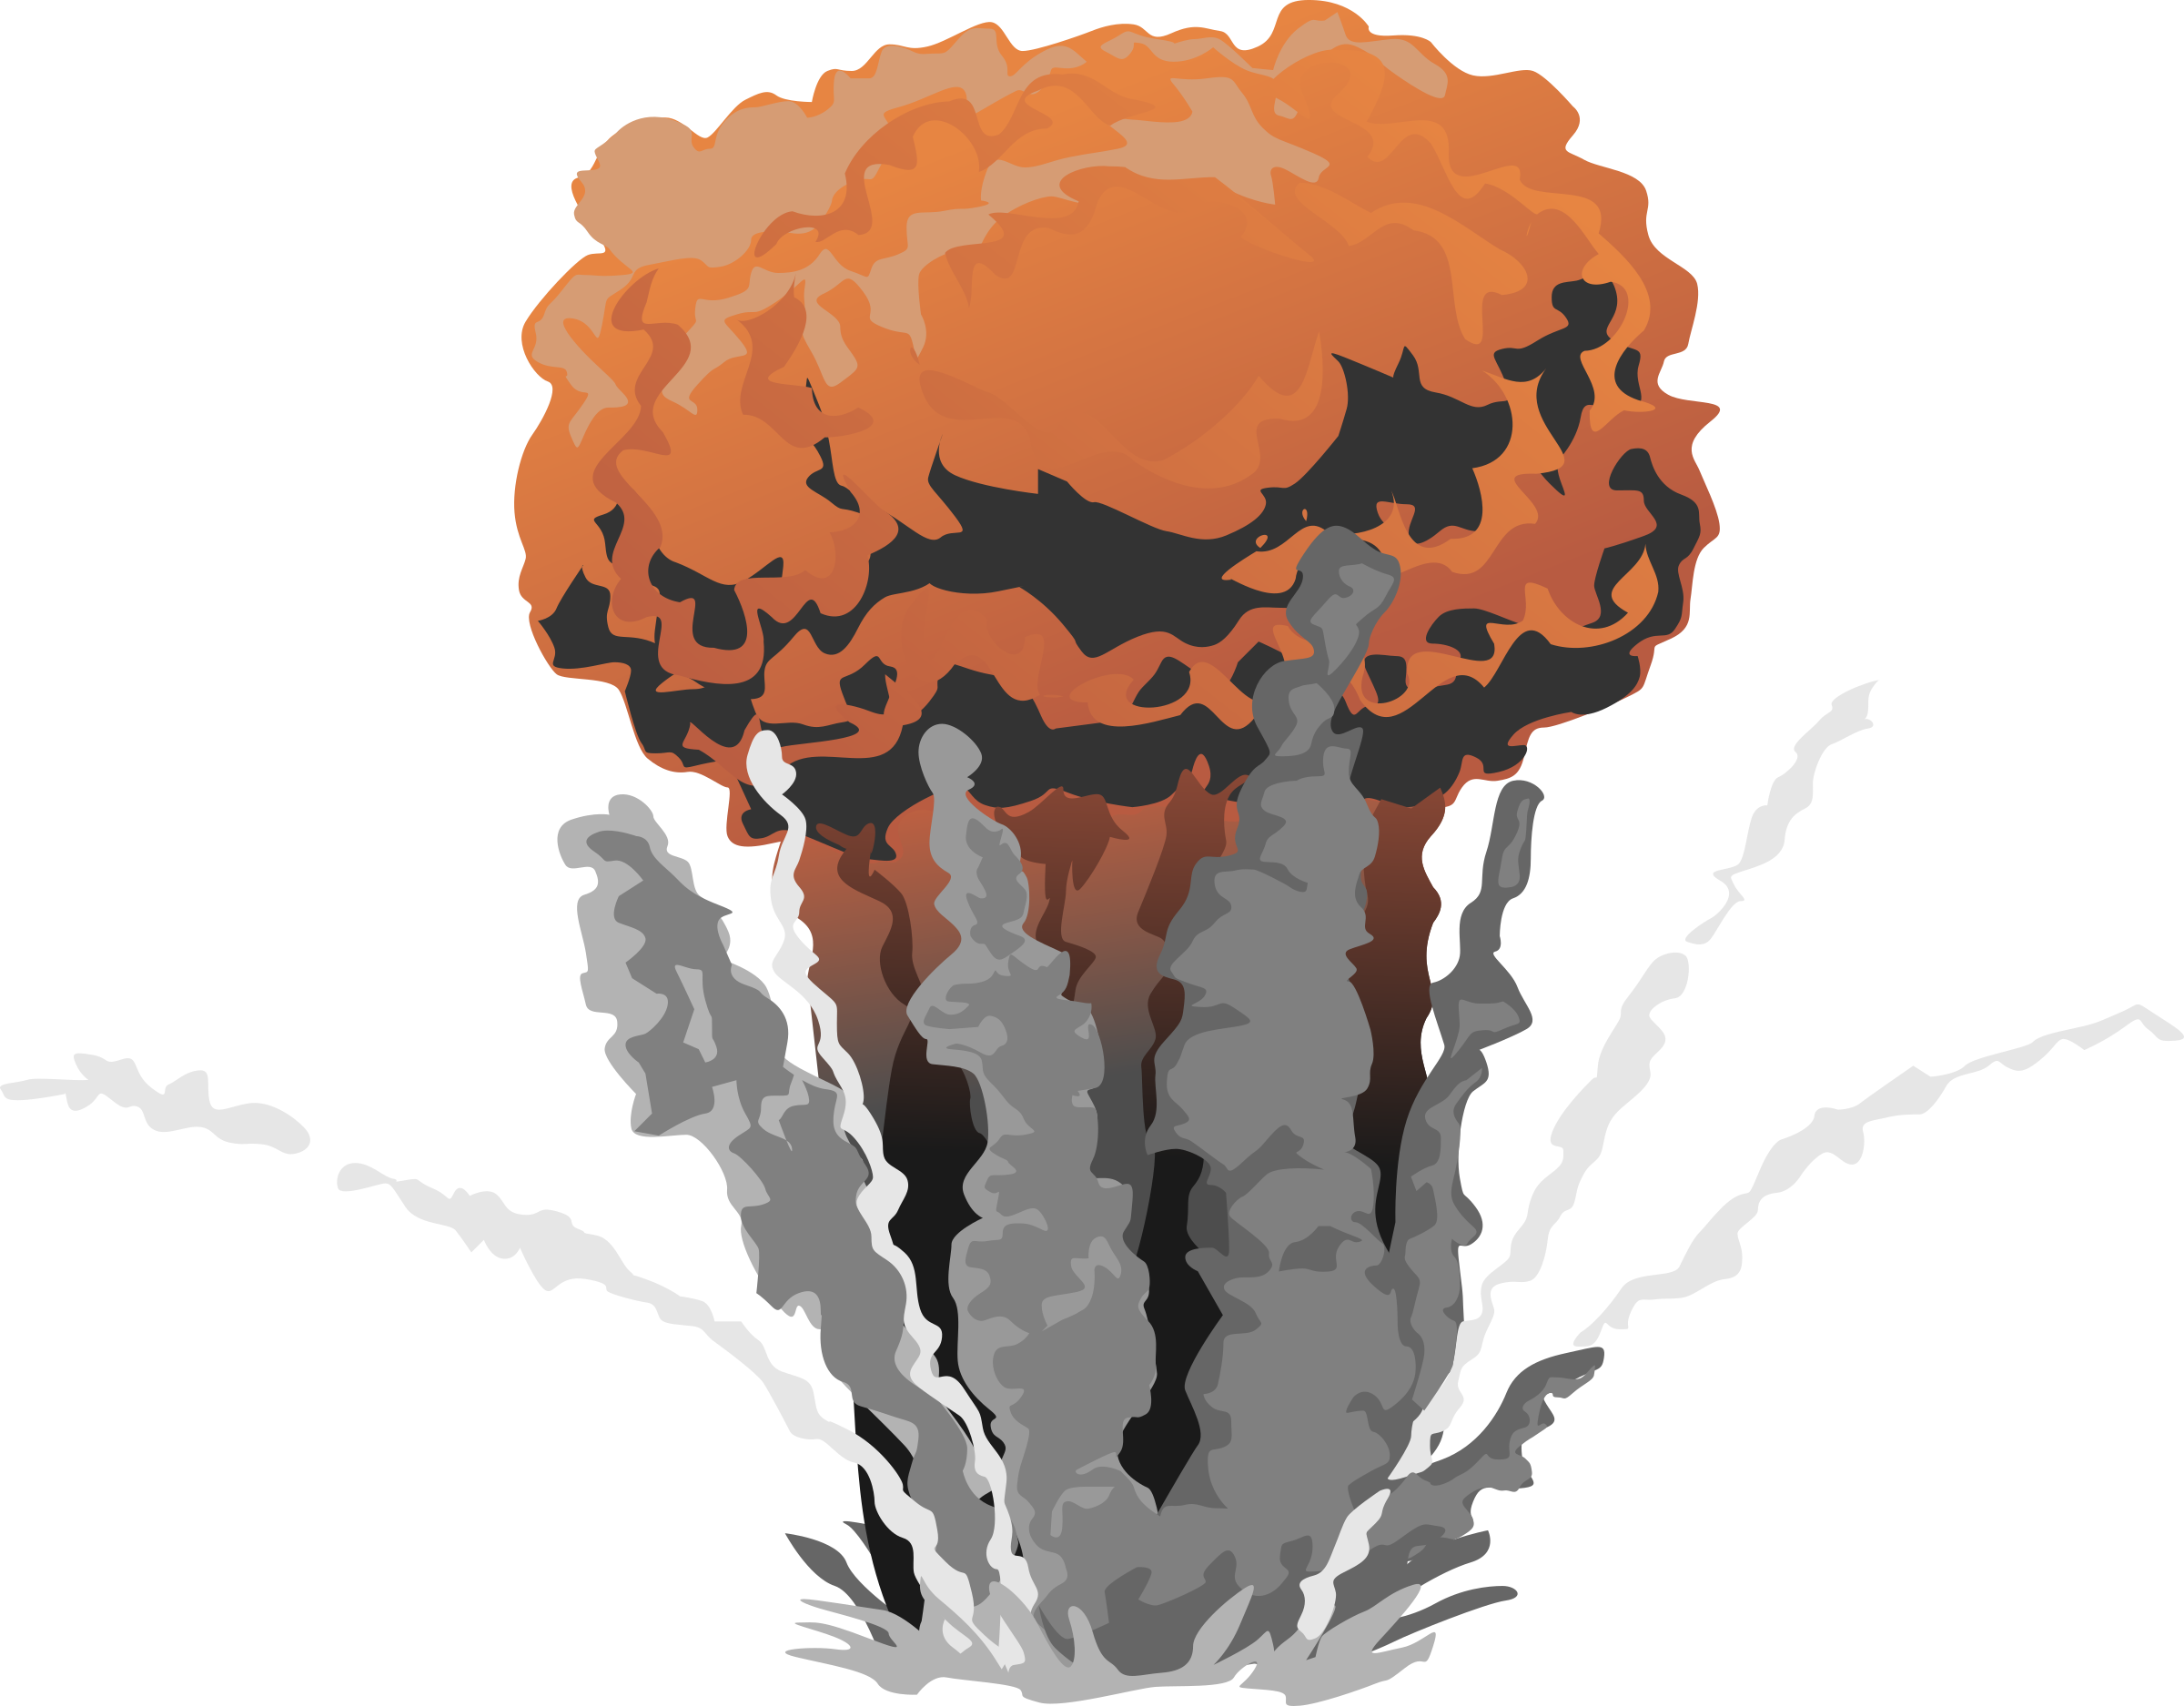 Fire Explosion with Smoke PNG Image